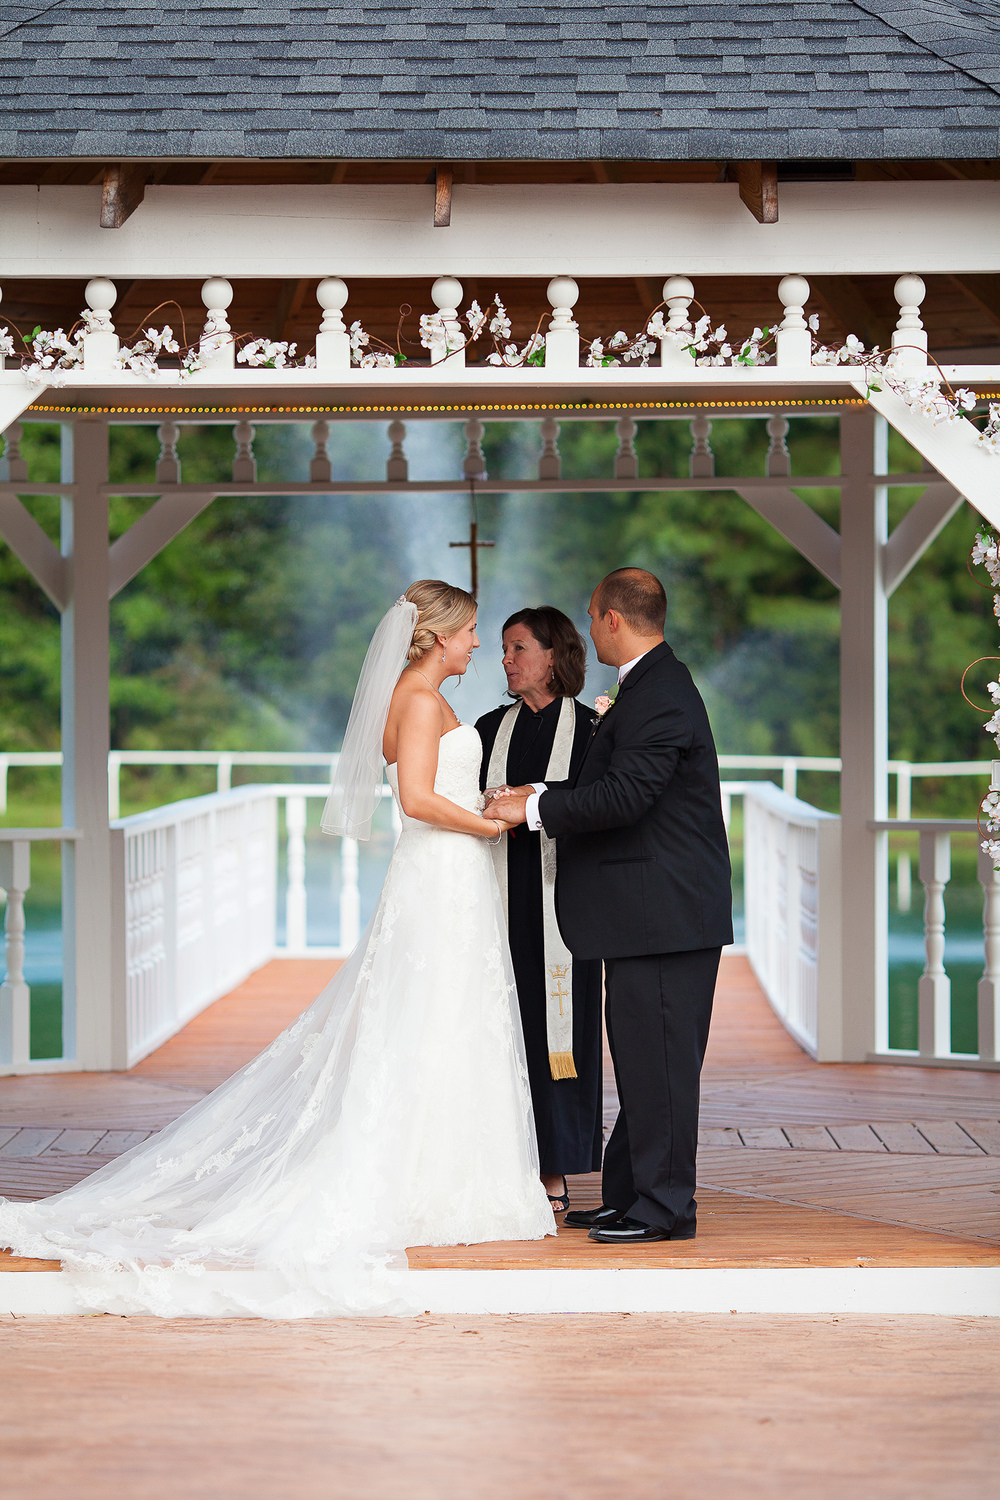 Exchanging Vows on a Gazebo